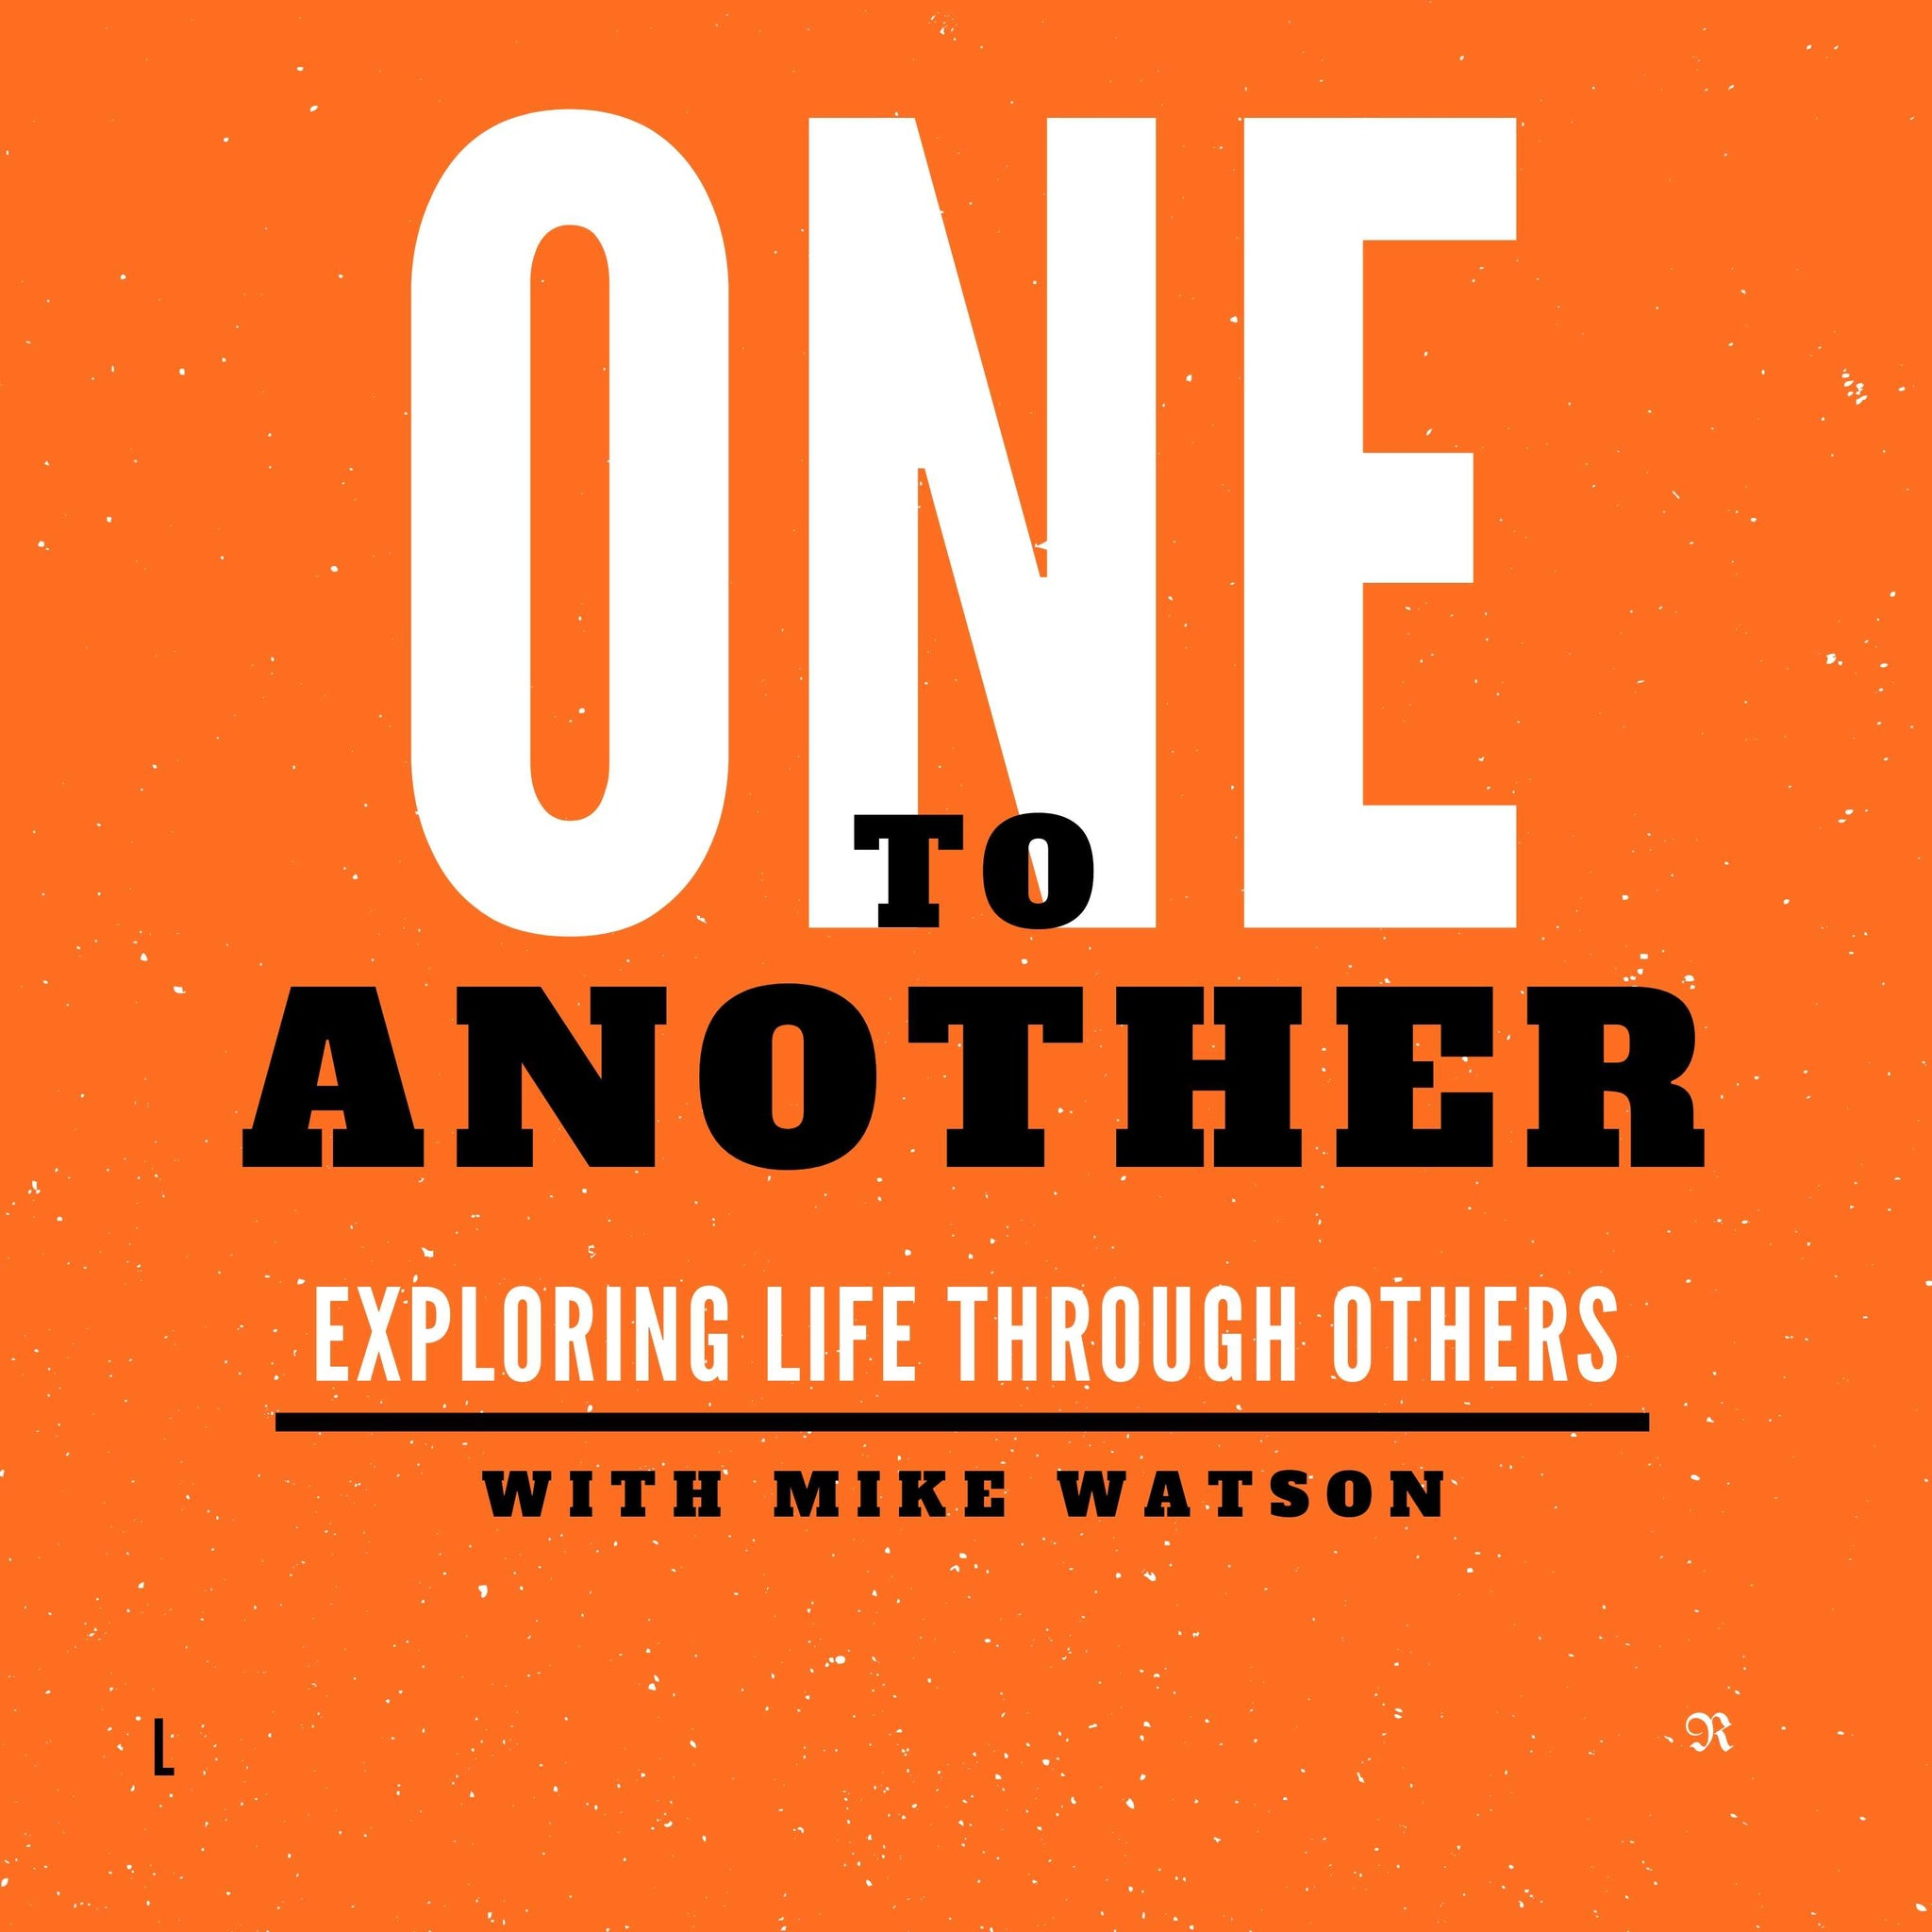 Nutrition for life: Jane Clarke on OneToAnother Podcast